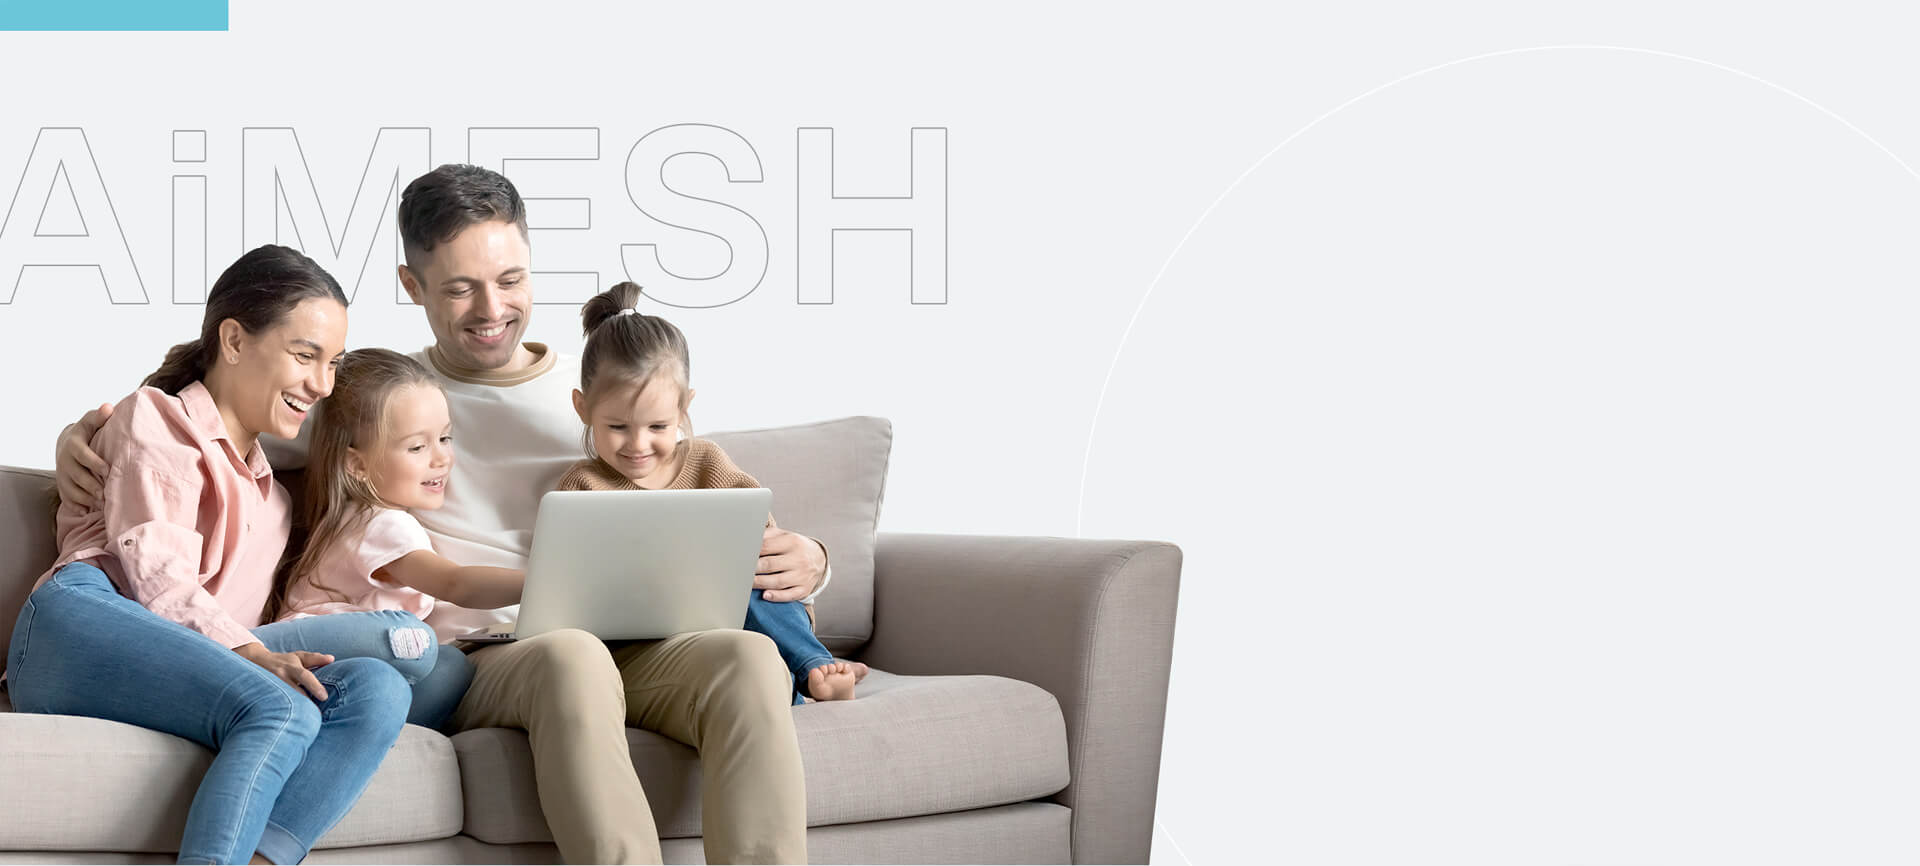 AiMesh home WiFi system | ASUS US